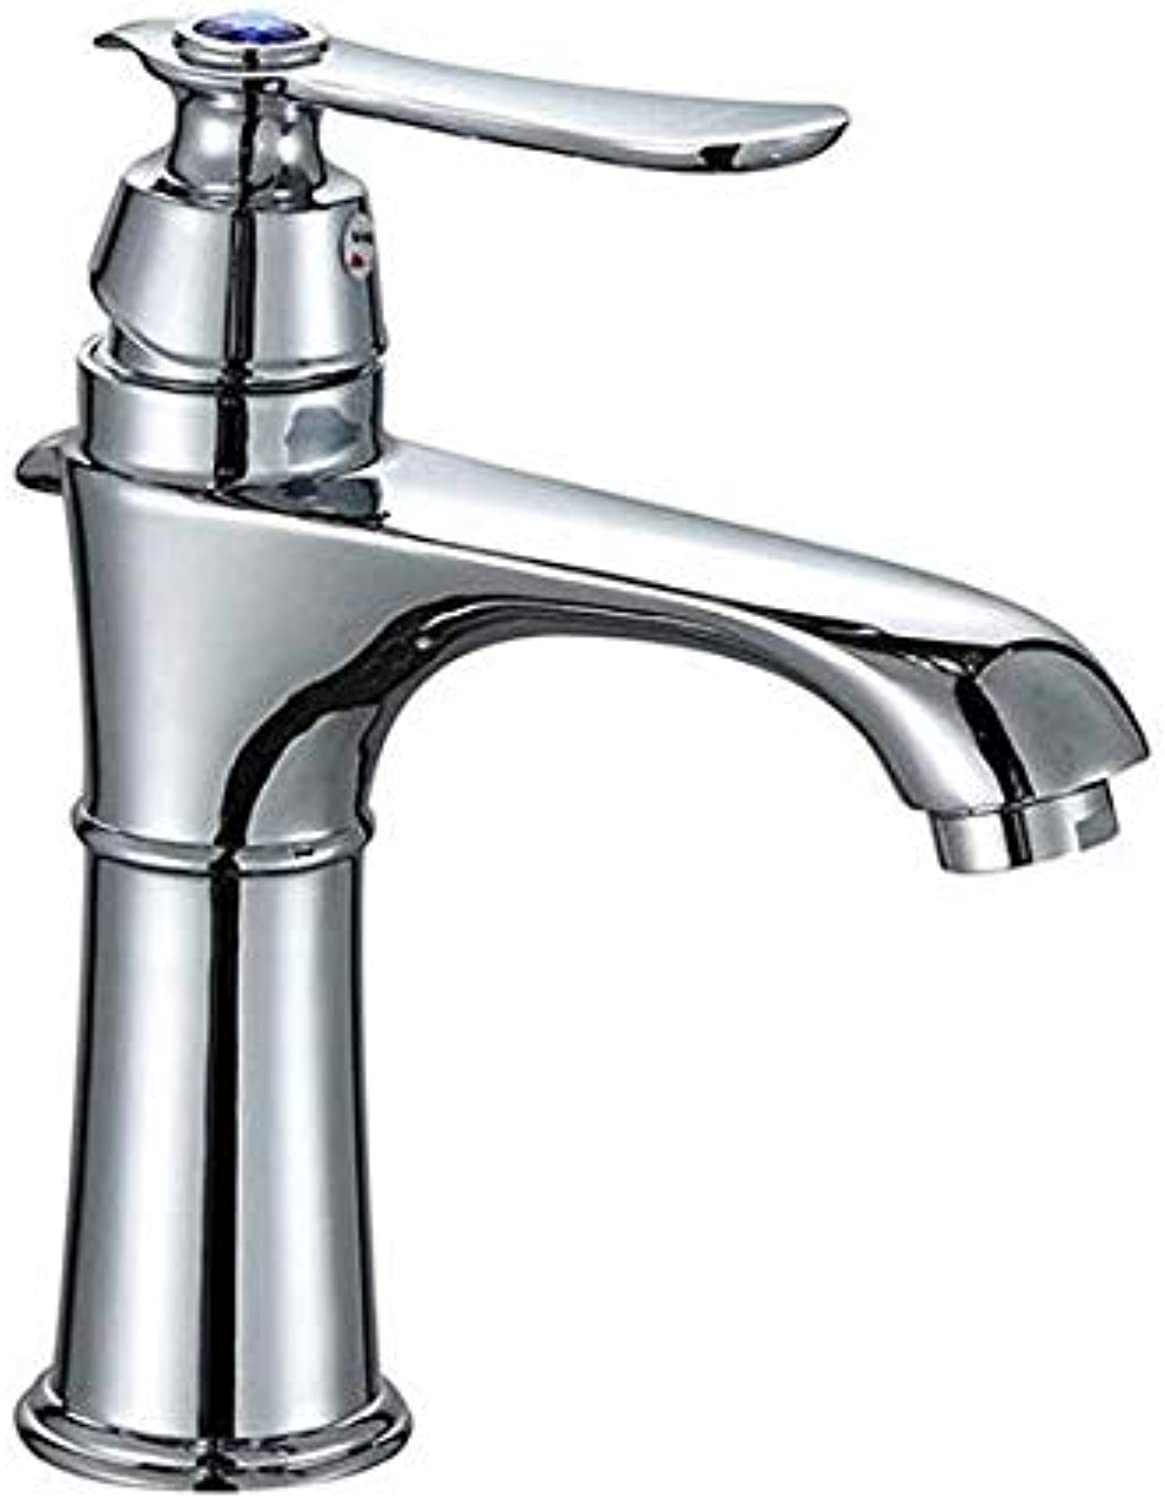 Basin Faucet Sink Faucet Retro Pure Copper Hot and Cold Water Faucets Single Handle Single Hole Washing Hot and Cold Water Sink Faucets Sink Faucets